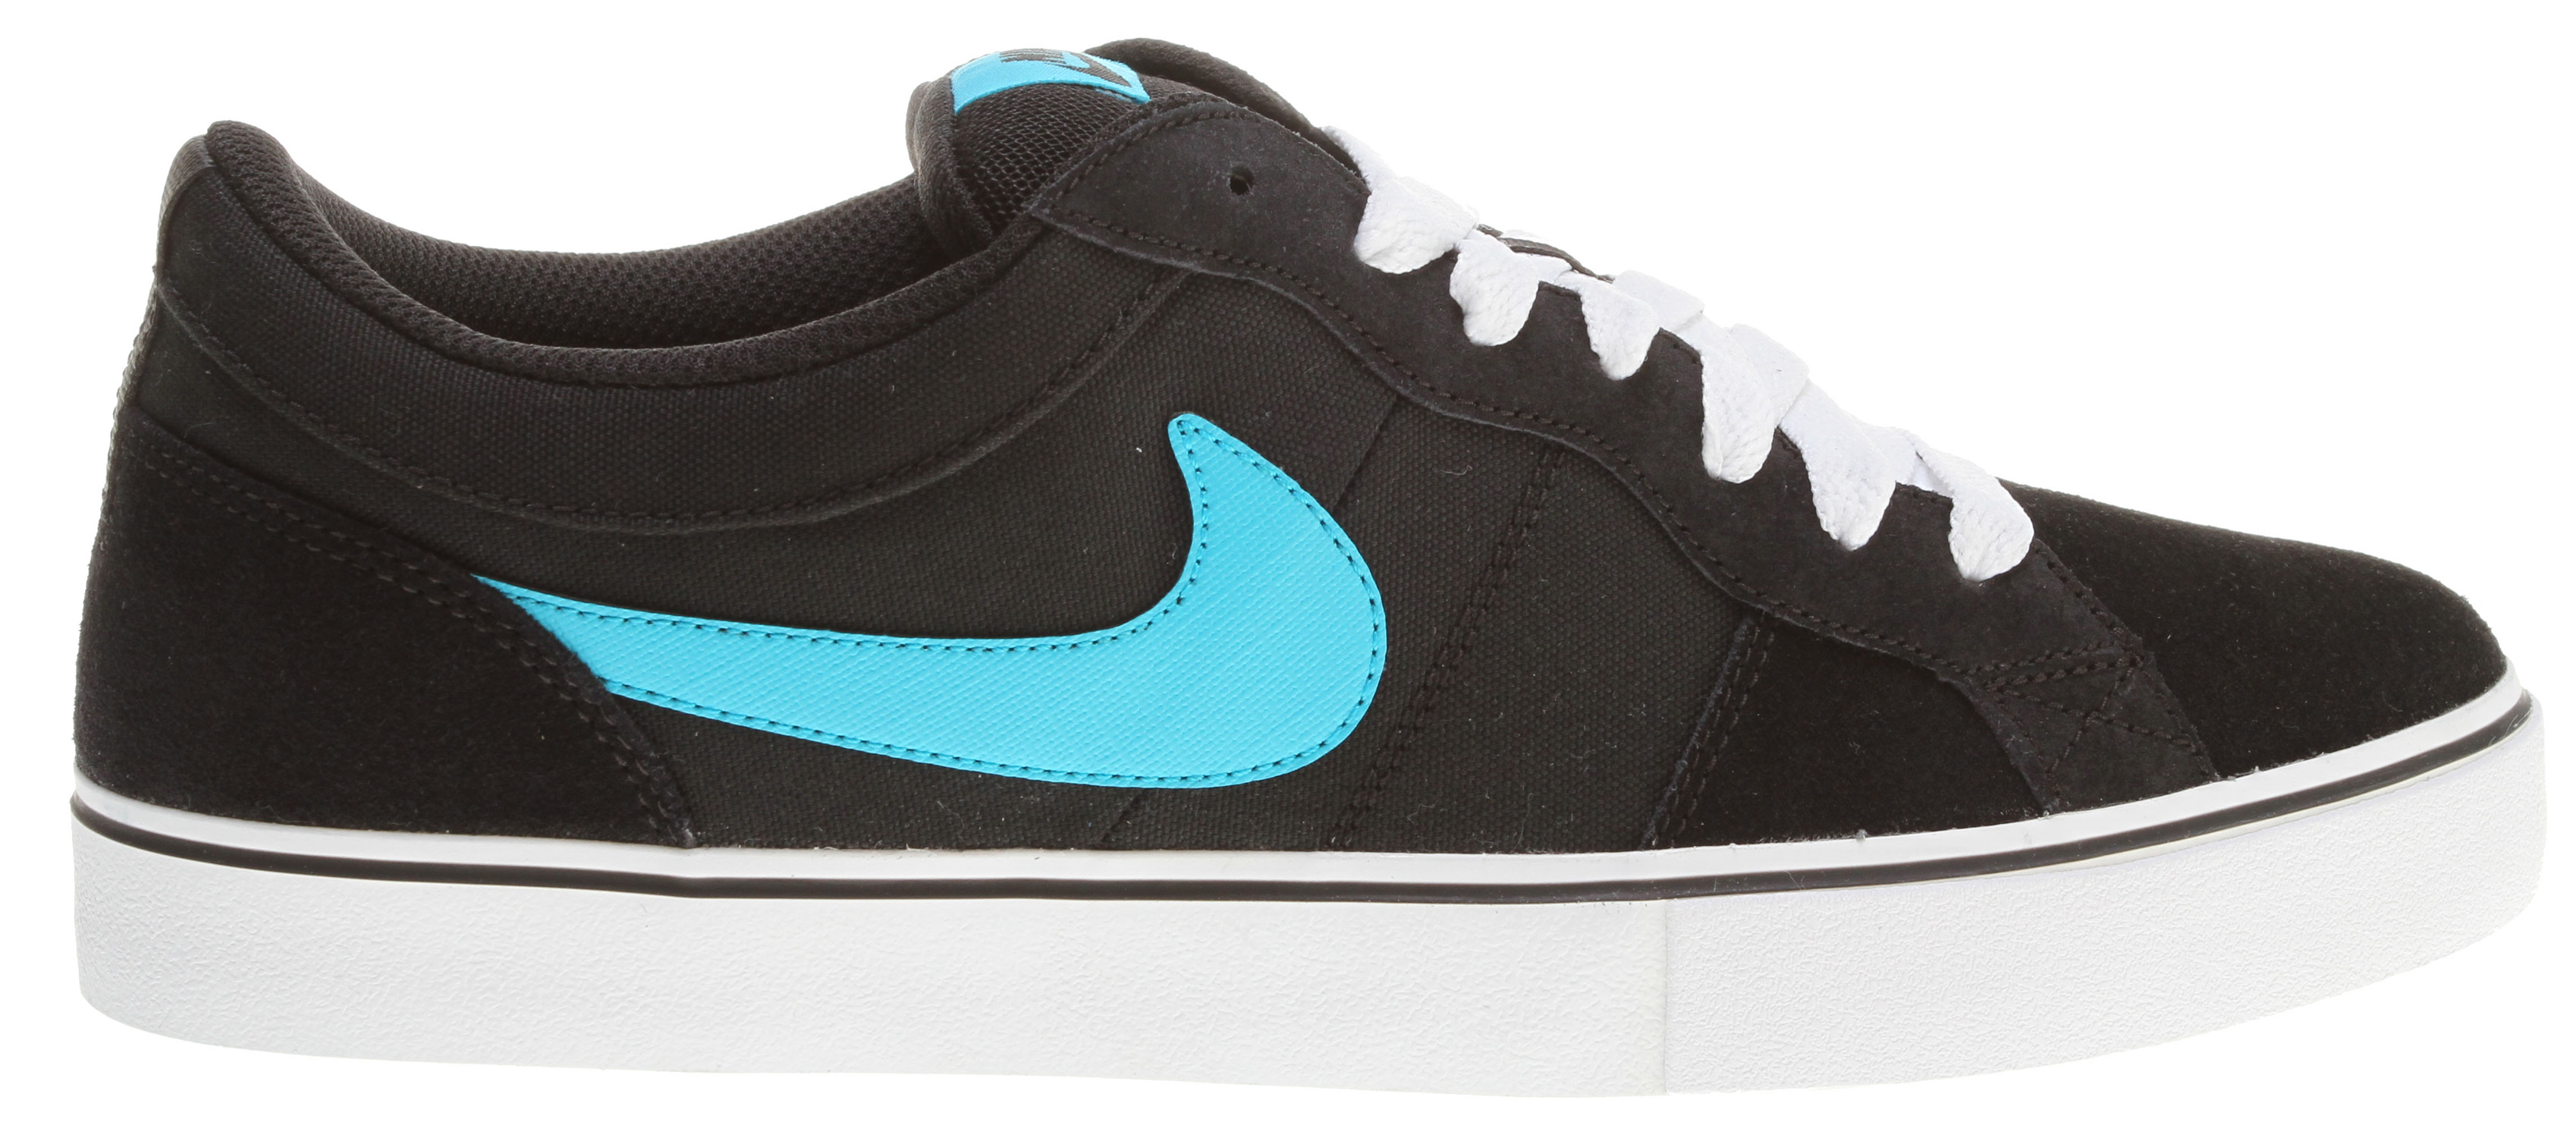 Skateboard Key Features of the Nike Isolate Skate Shoes: MIDSOLE: Phylon midsole for comfort. OUTSOLE: Rubber outsole for durability and support. Classic skate look with great material and color applications. UPPER: Suede, leather and Nubuck materials. - $44.95